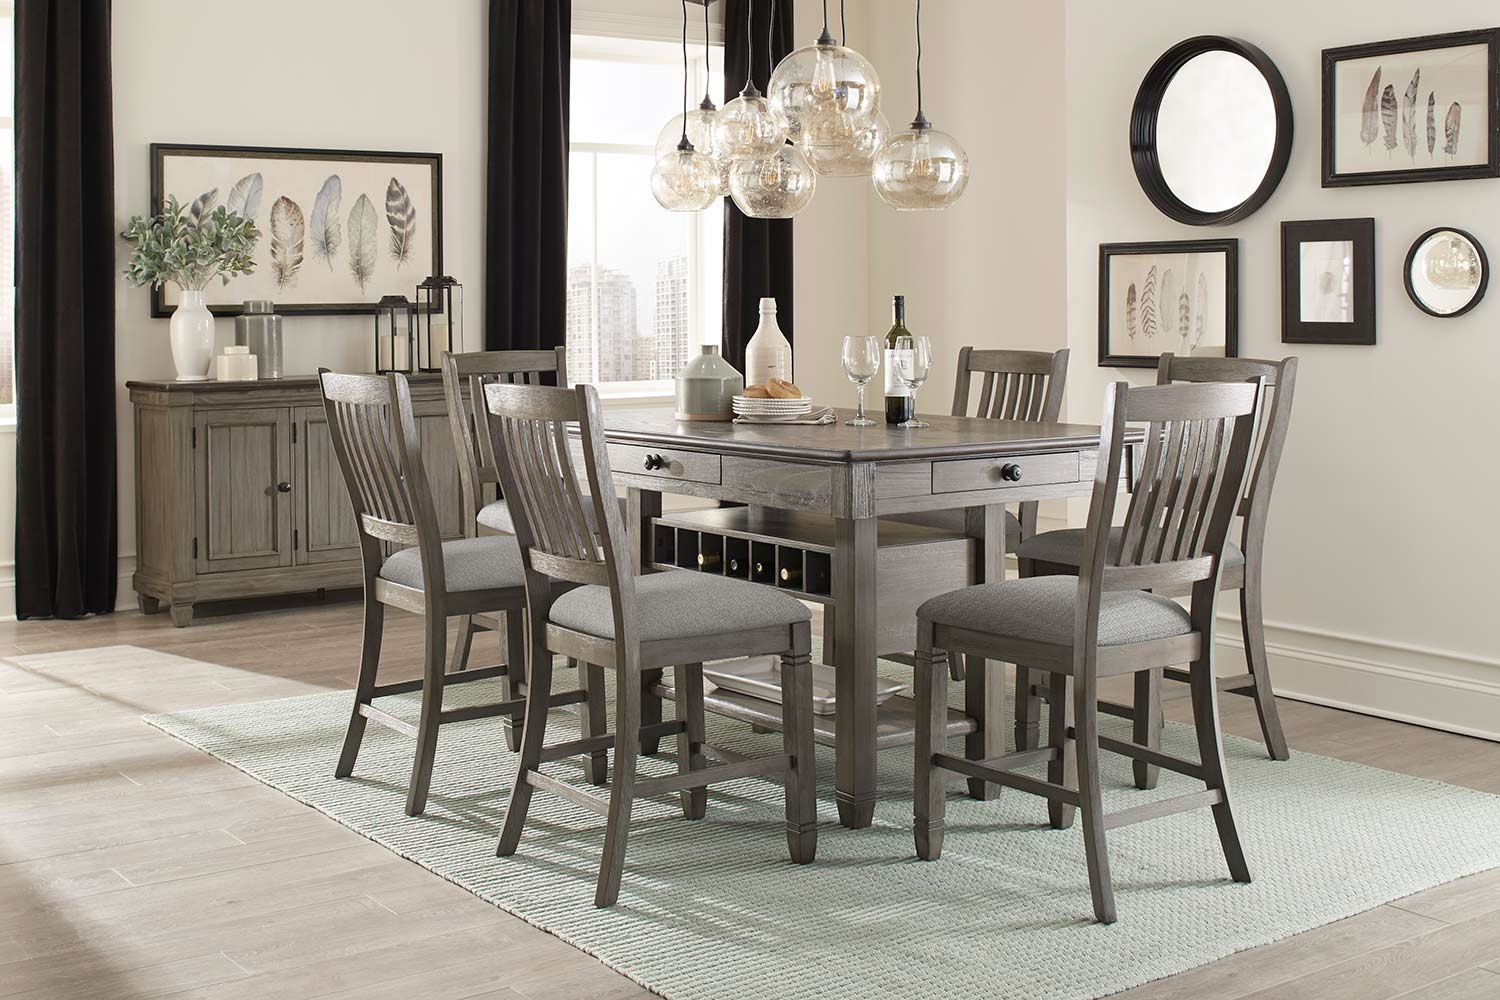 Homelegance Granby Counter Height Dining Set - Antique Gray and Coffee